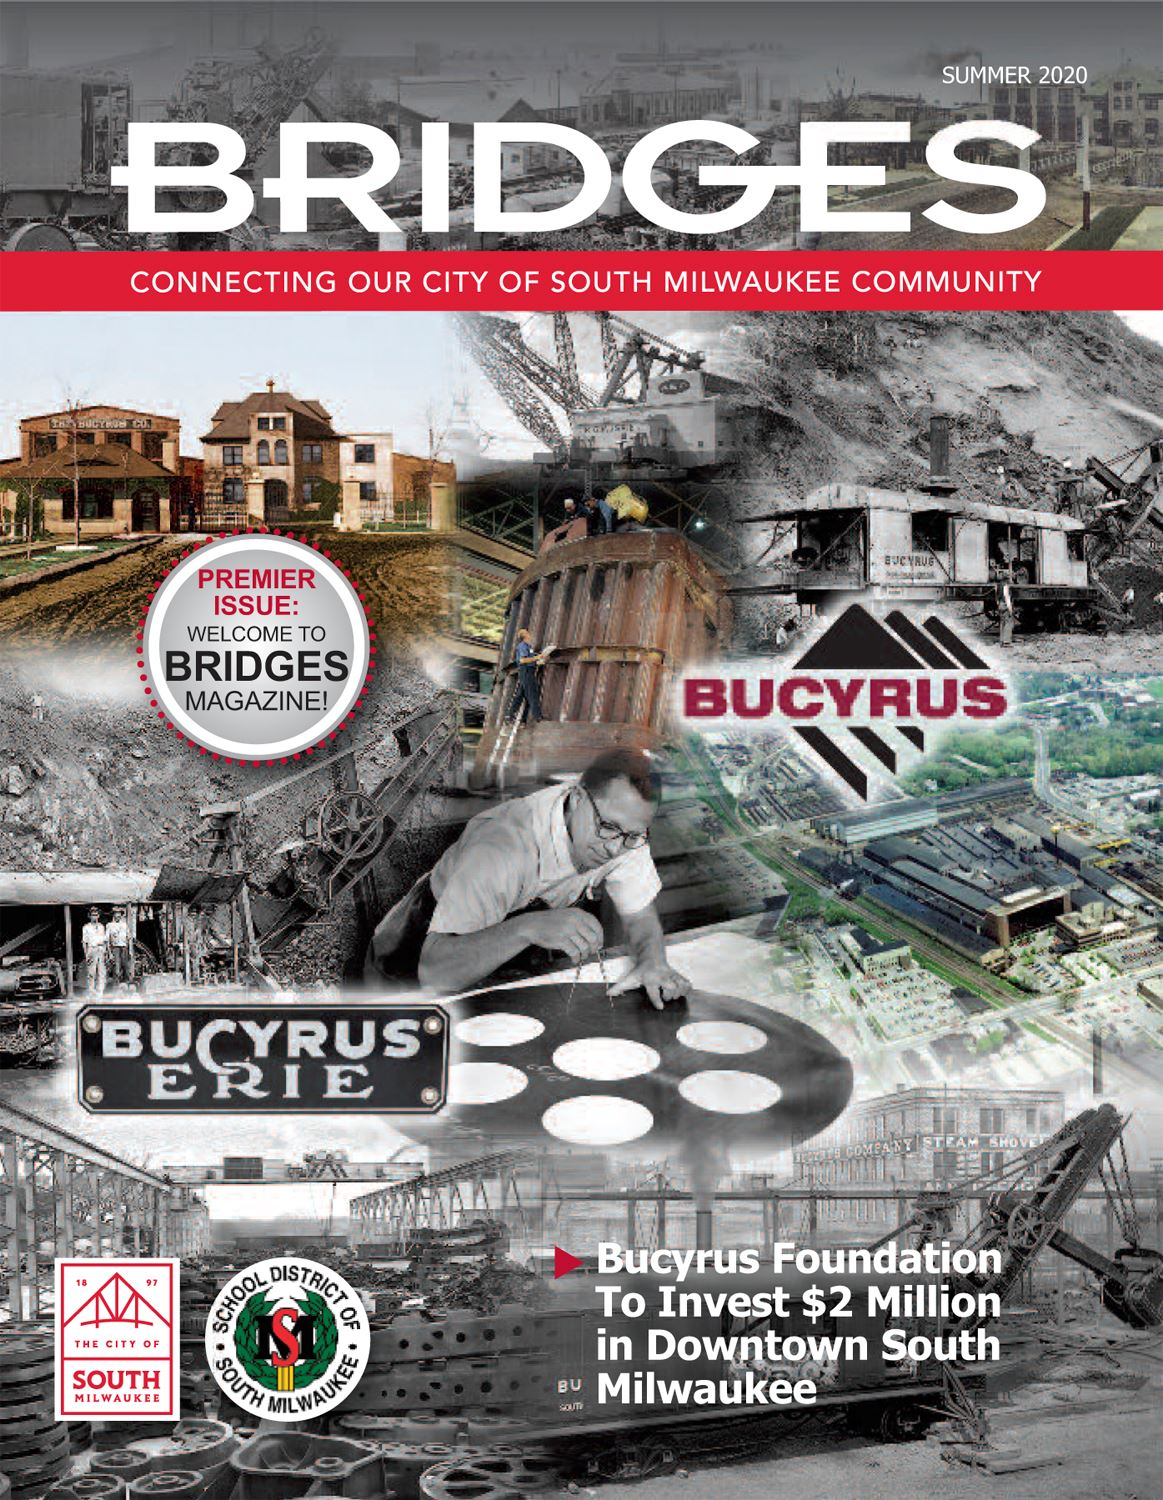 Bridges Magazine Cover Summer 2020